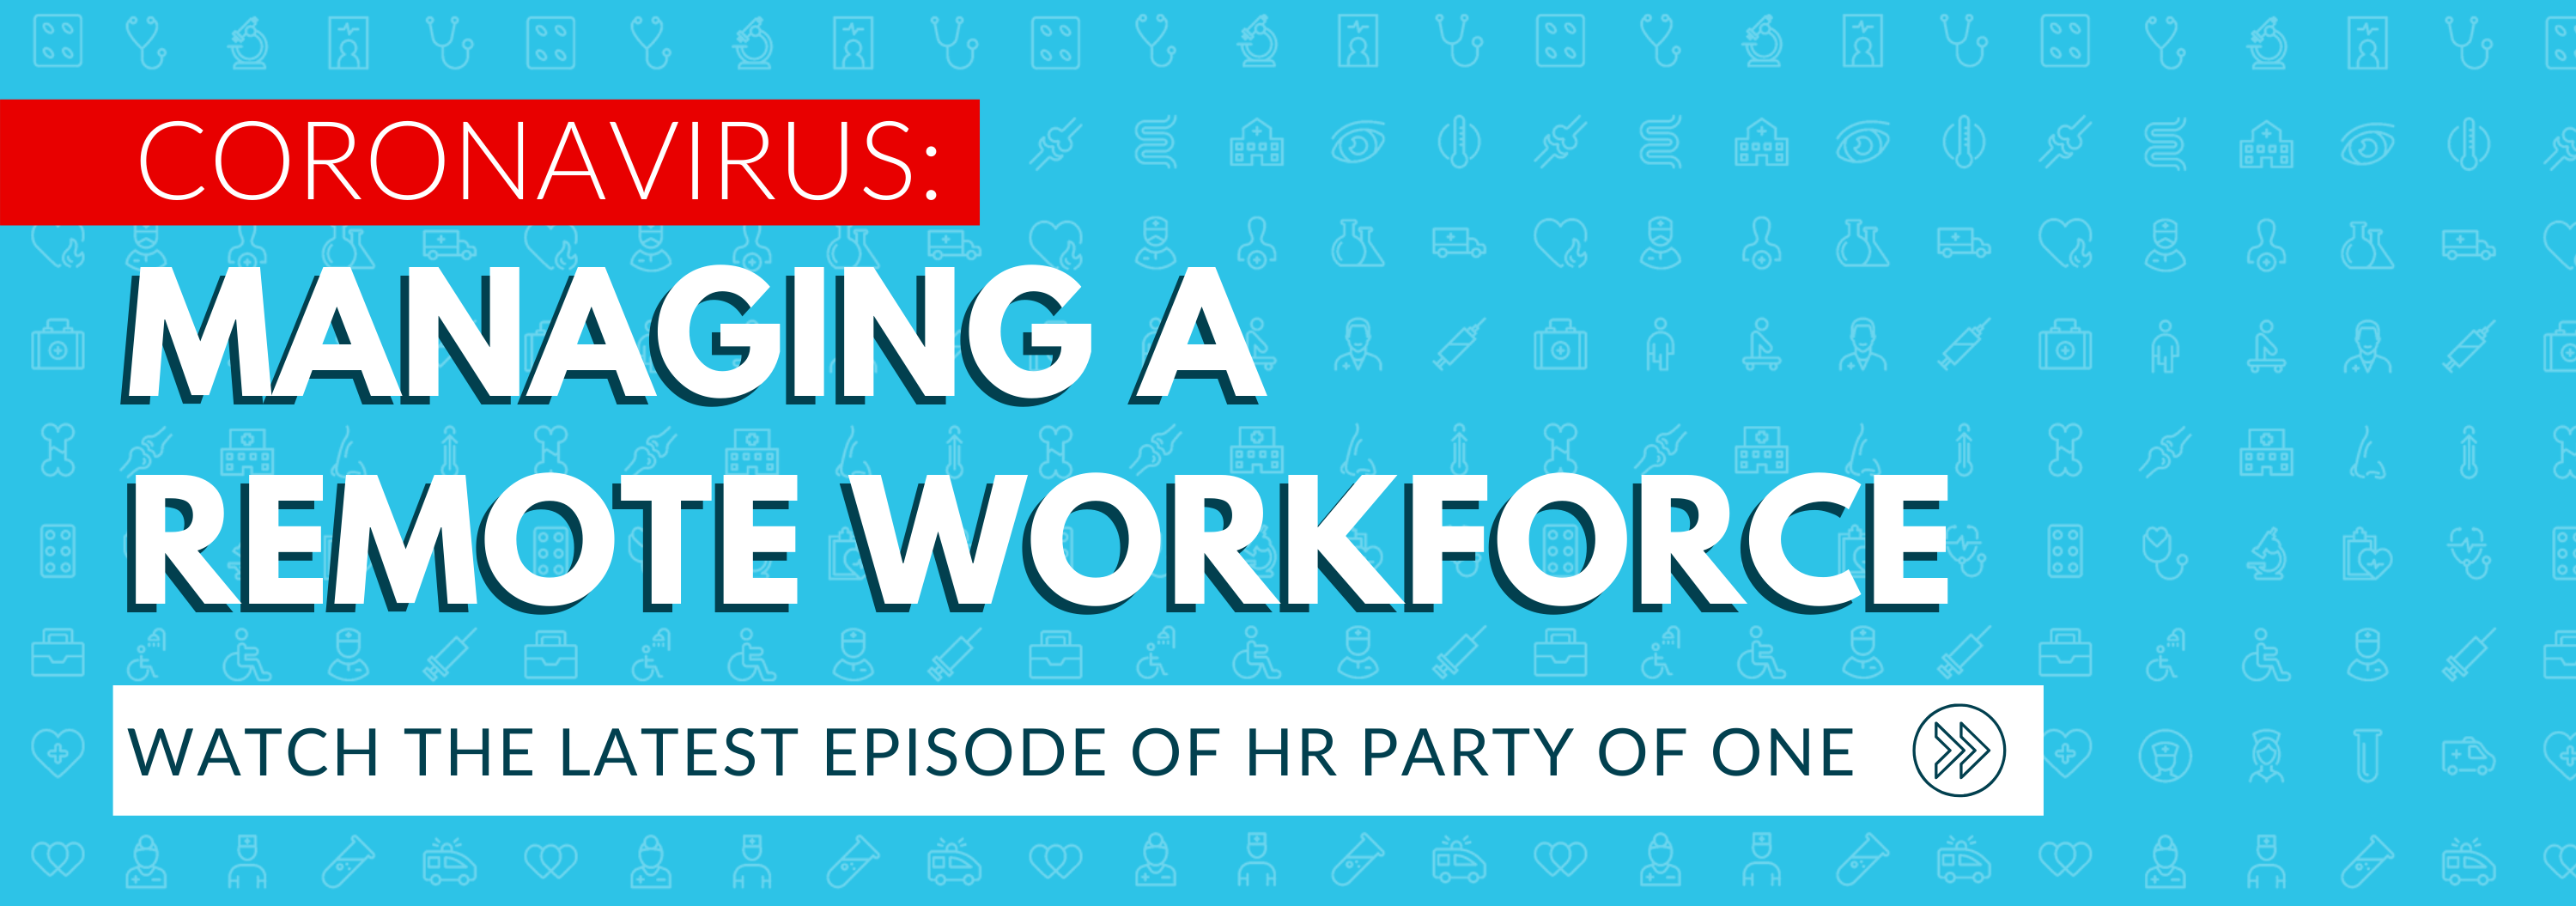 Coronavirus - Managing a remote workforce HR Party of One Episode